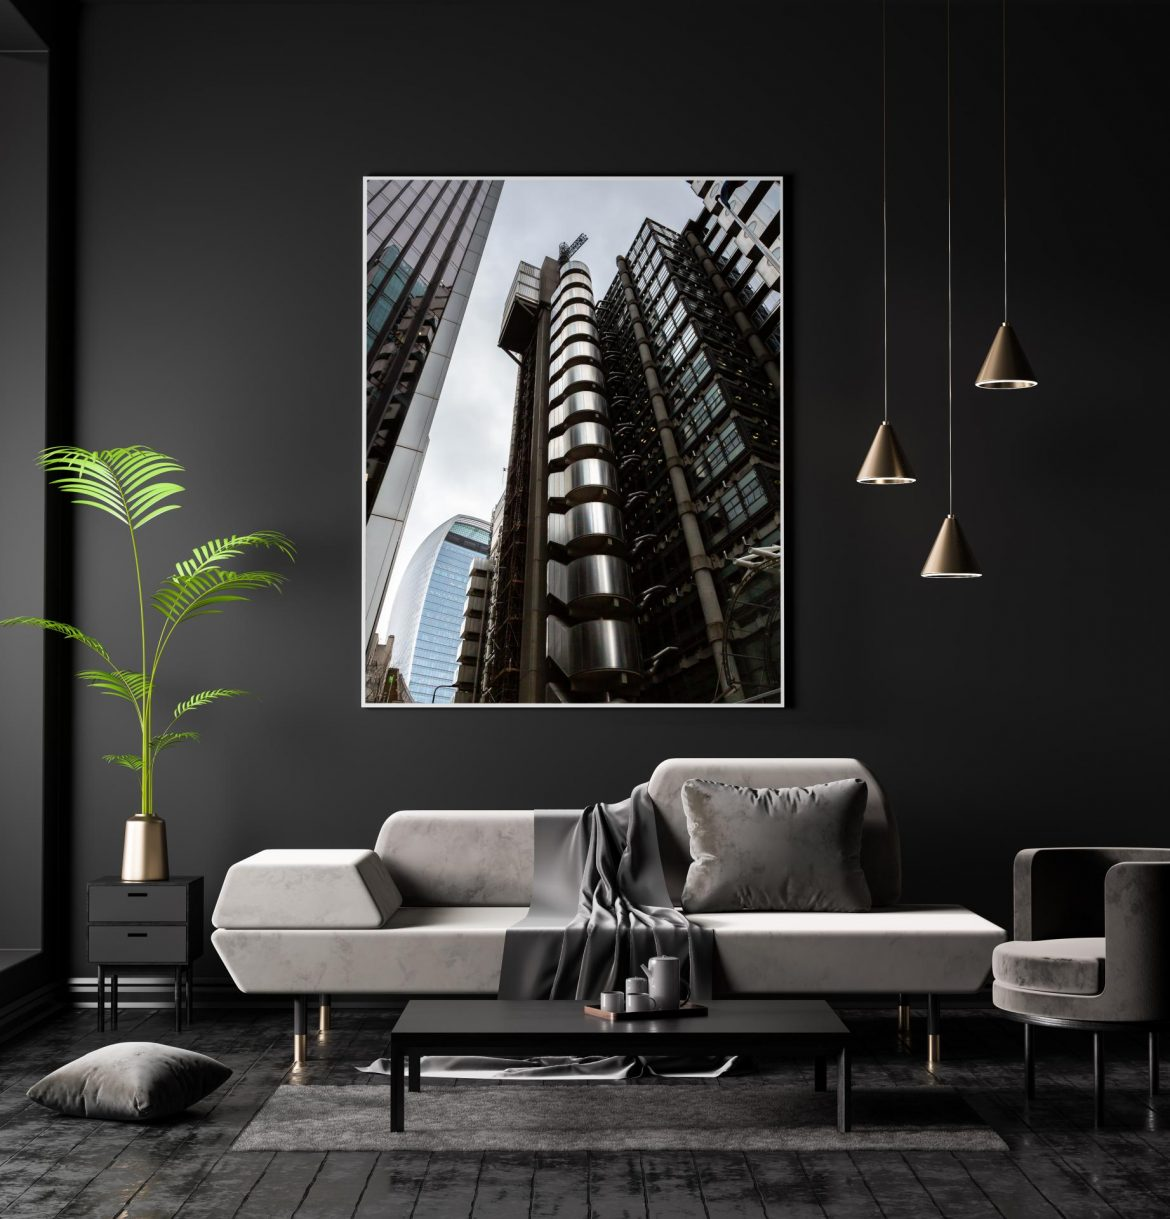 The Lloyds building London looking upwards with the walkie talkie building in the background.London Architectural Photographer, Liane Ryan Photography